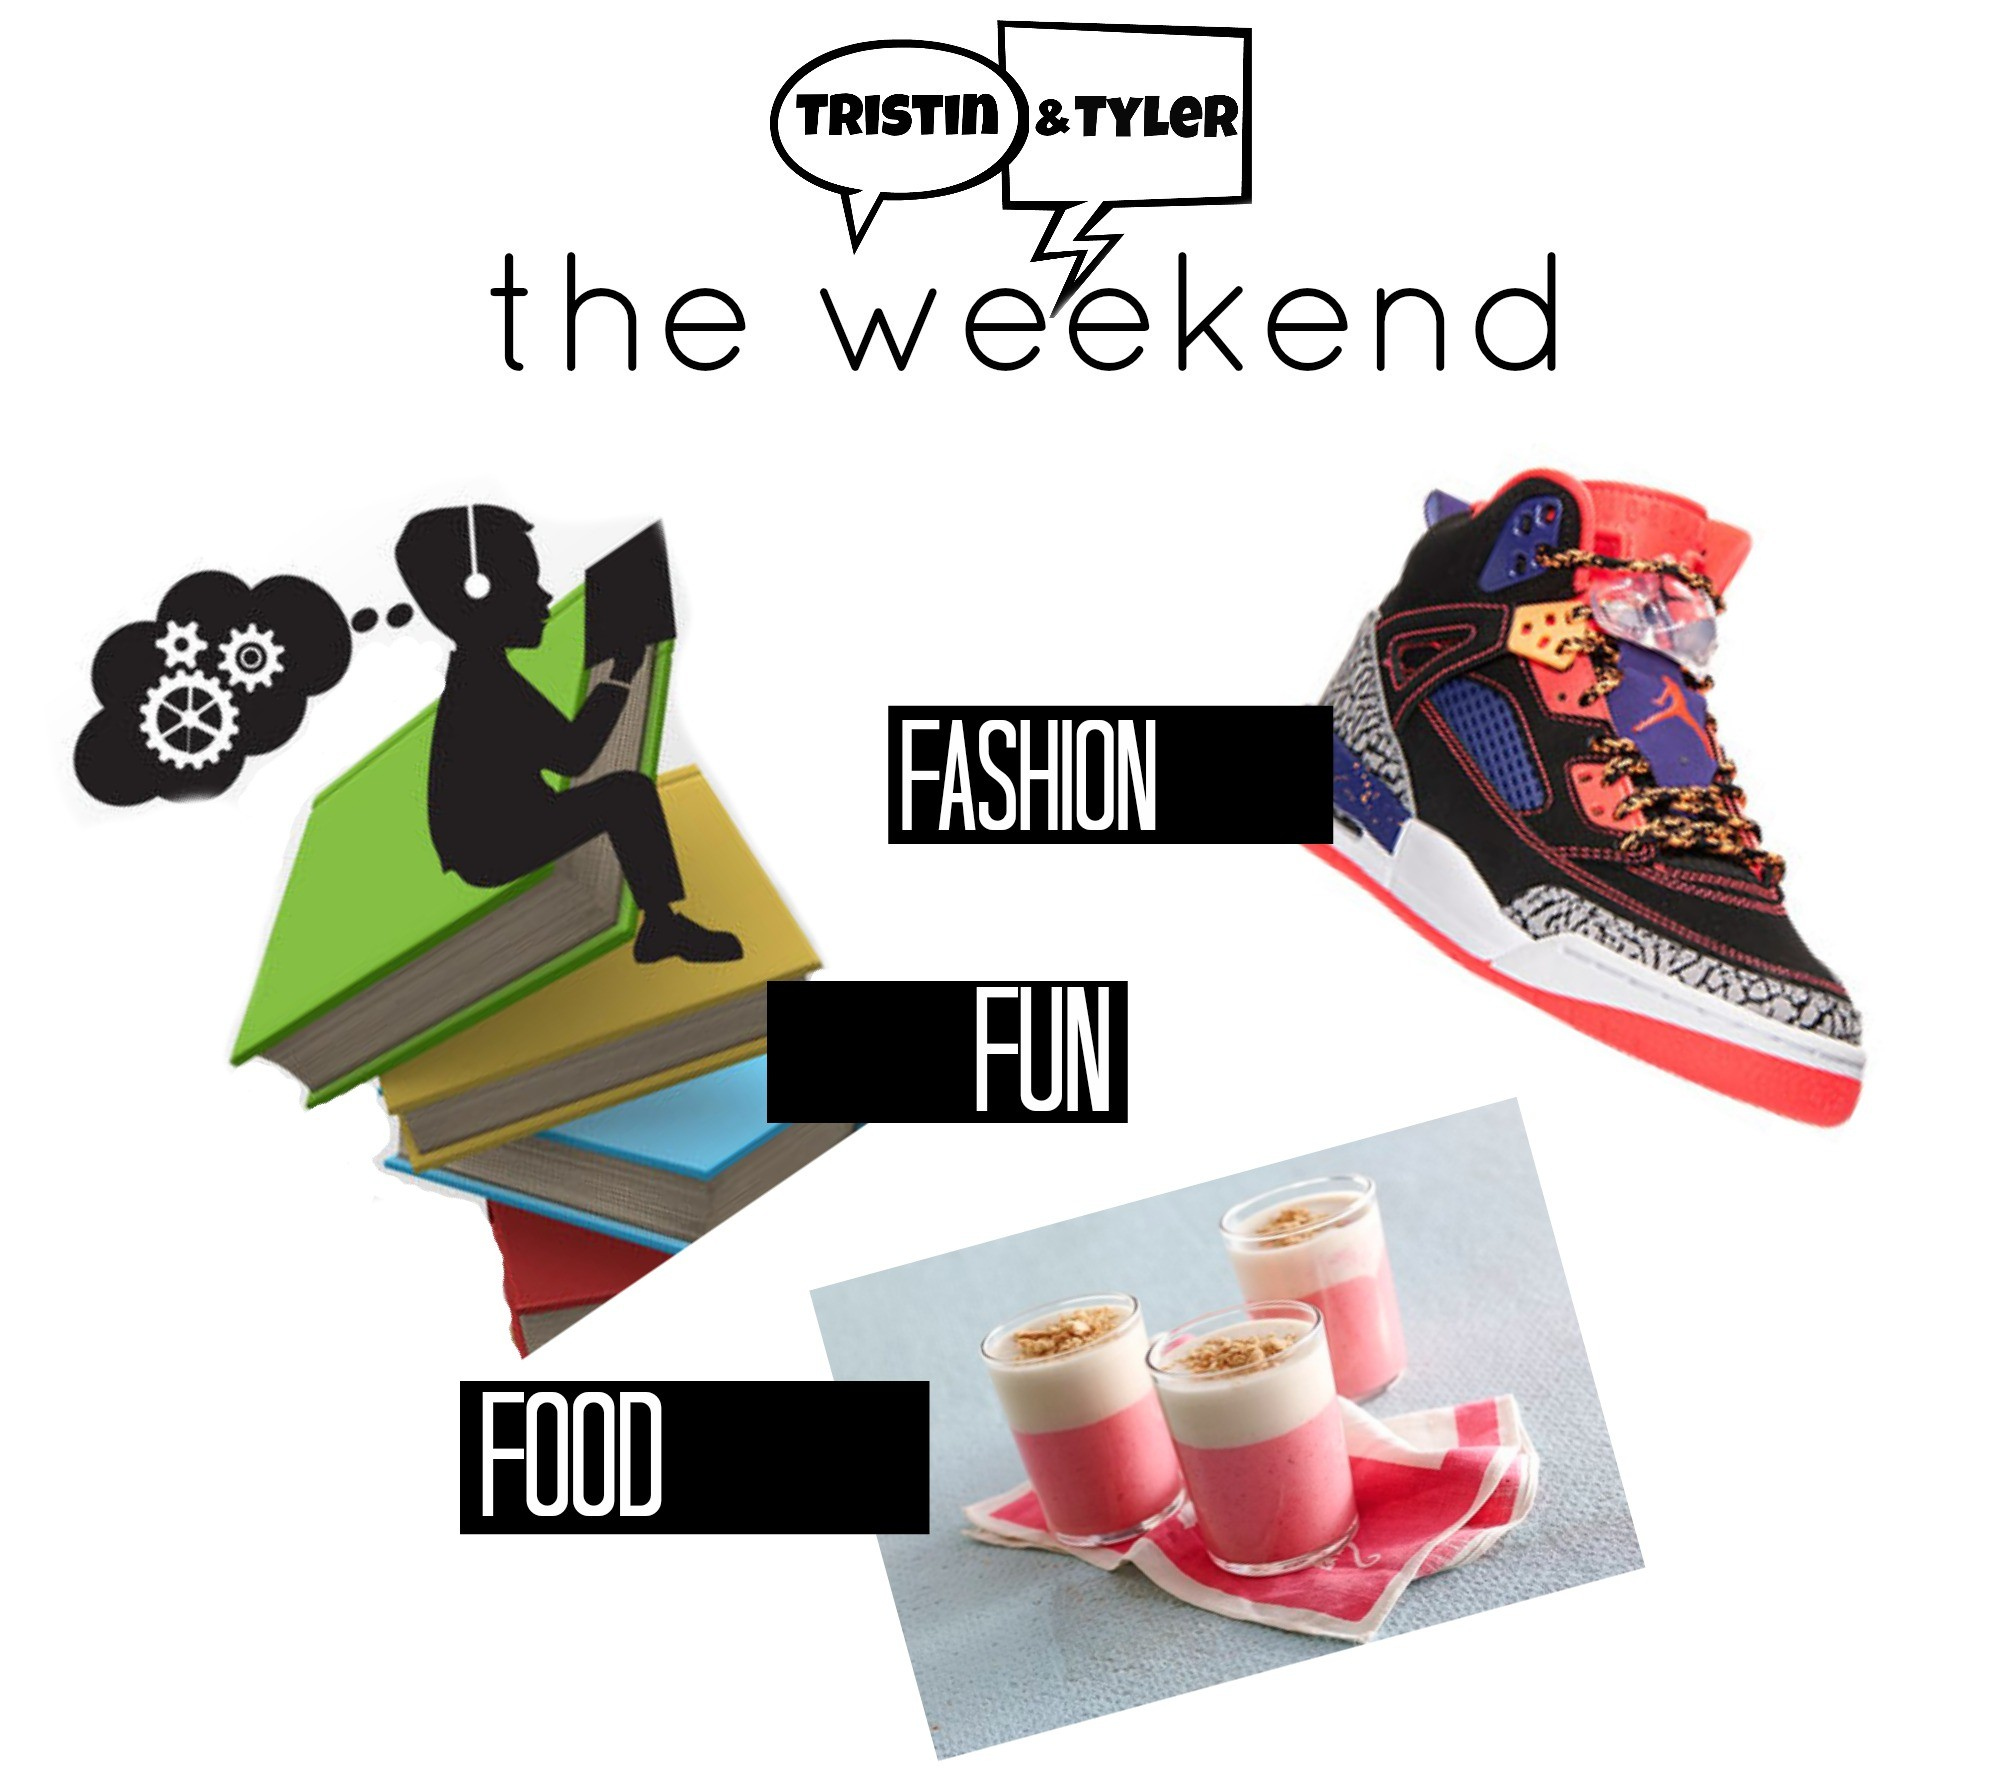 the weekend 5.29.15